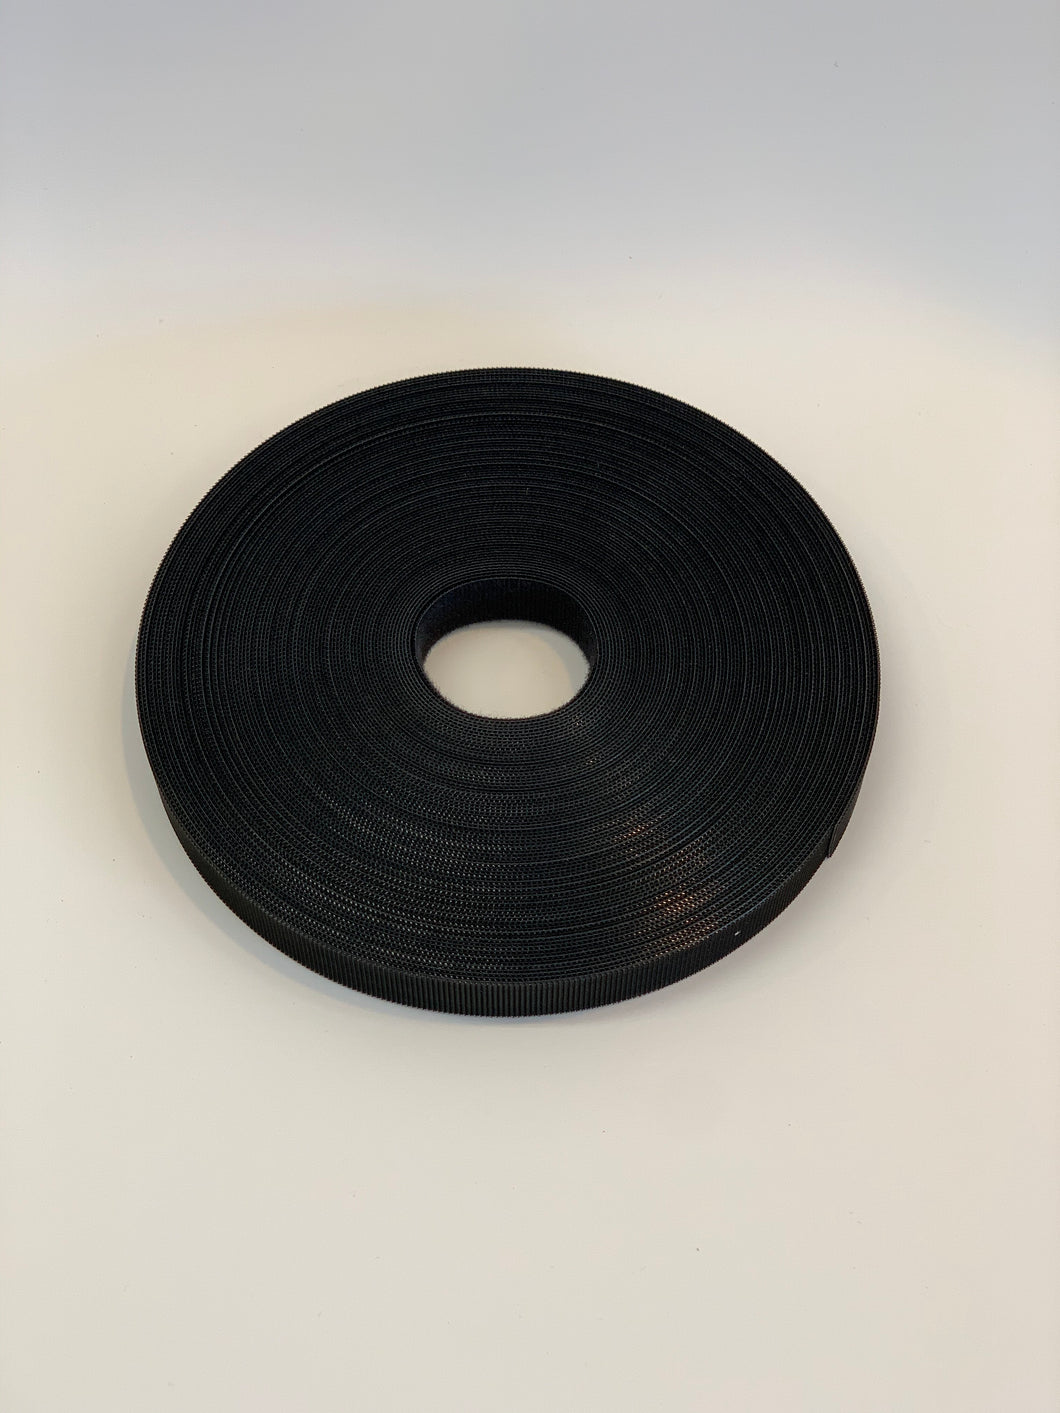 Velcro Mounting Tape (25 yards)